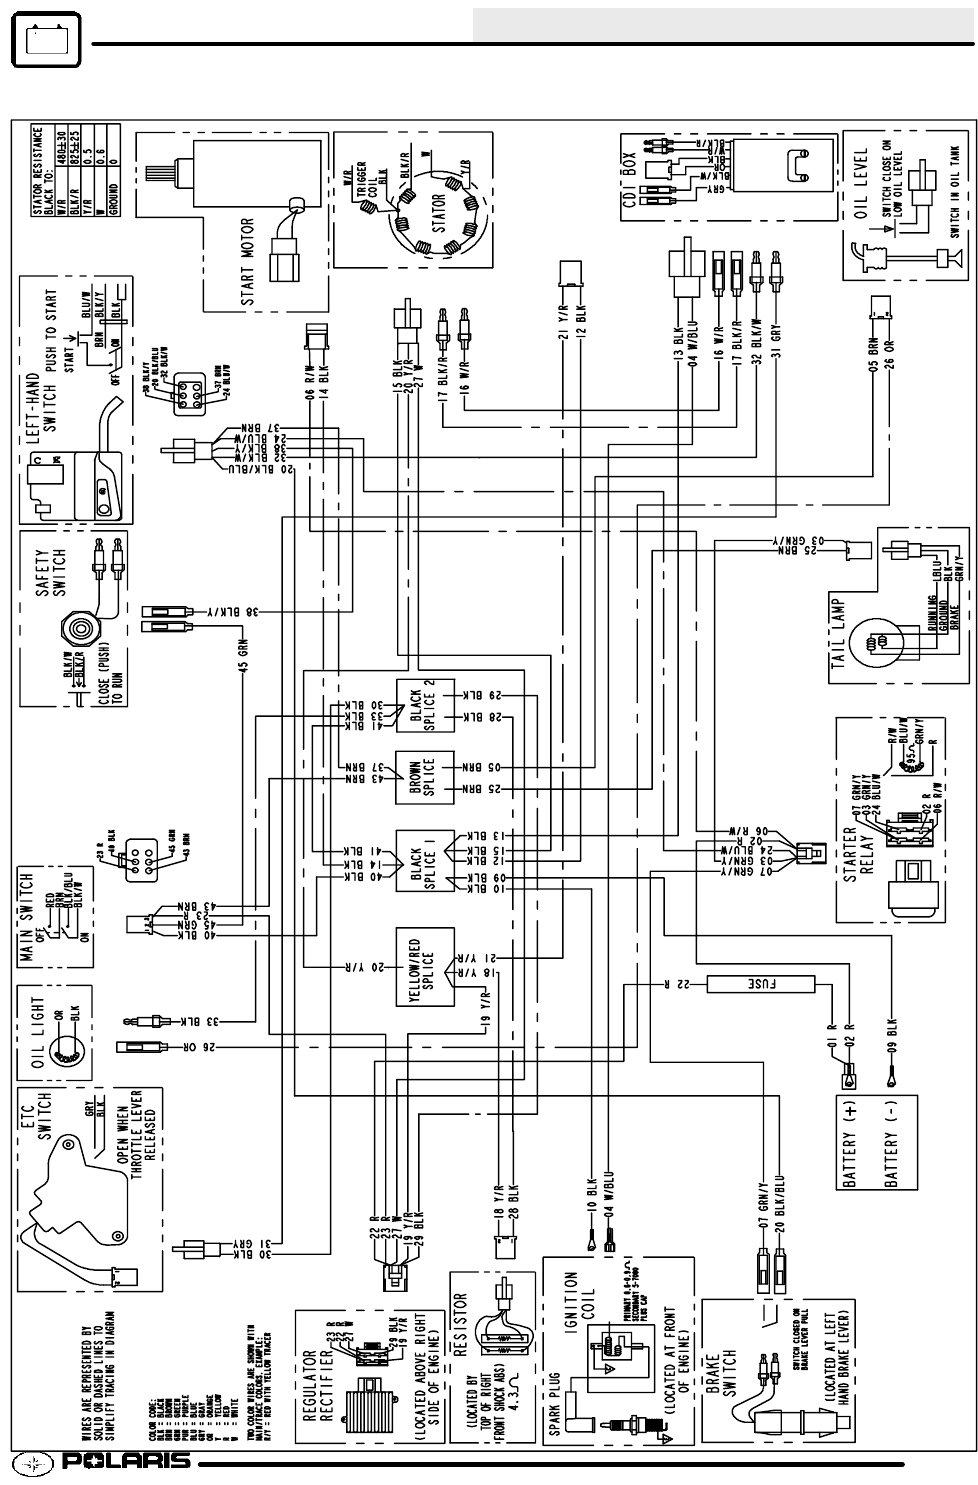 20 Lovely Polaris Sportsman 500 Wiring Diagram